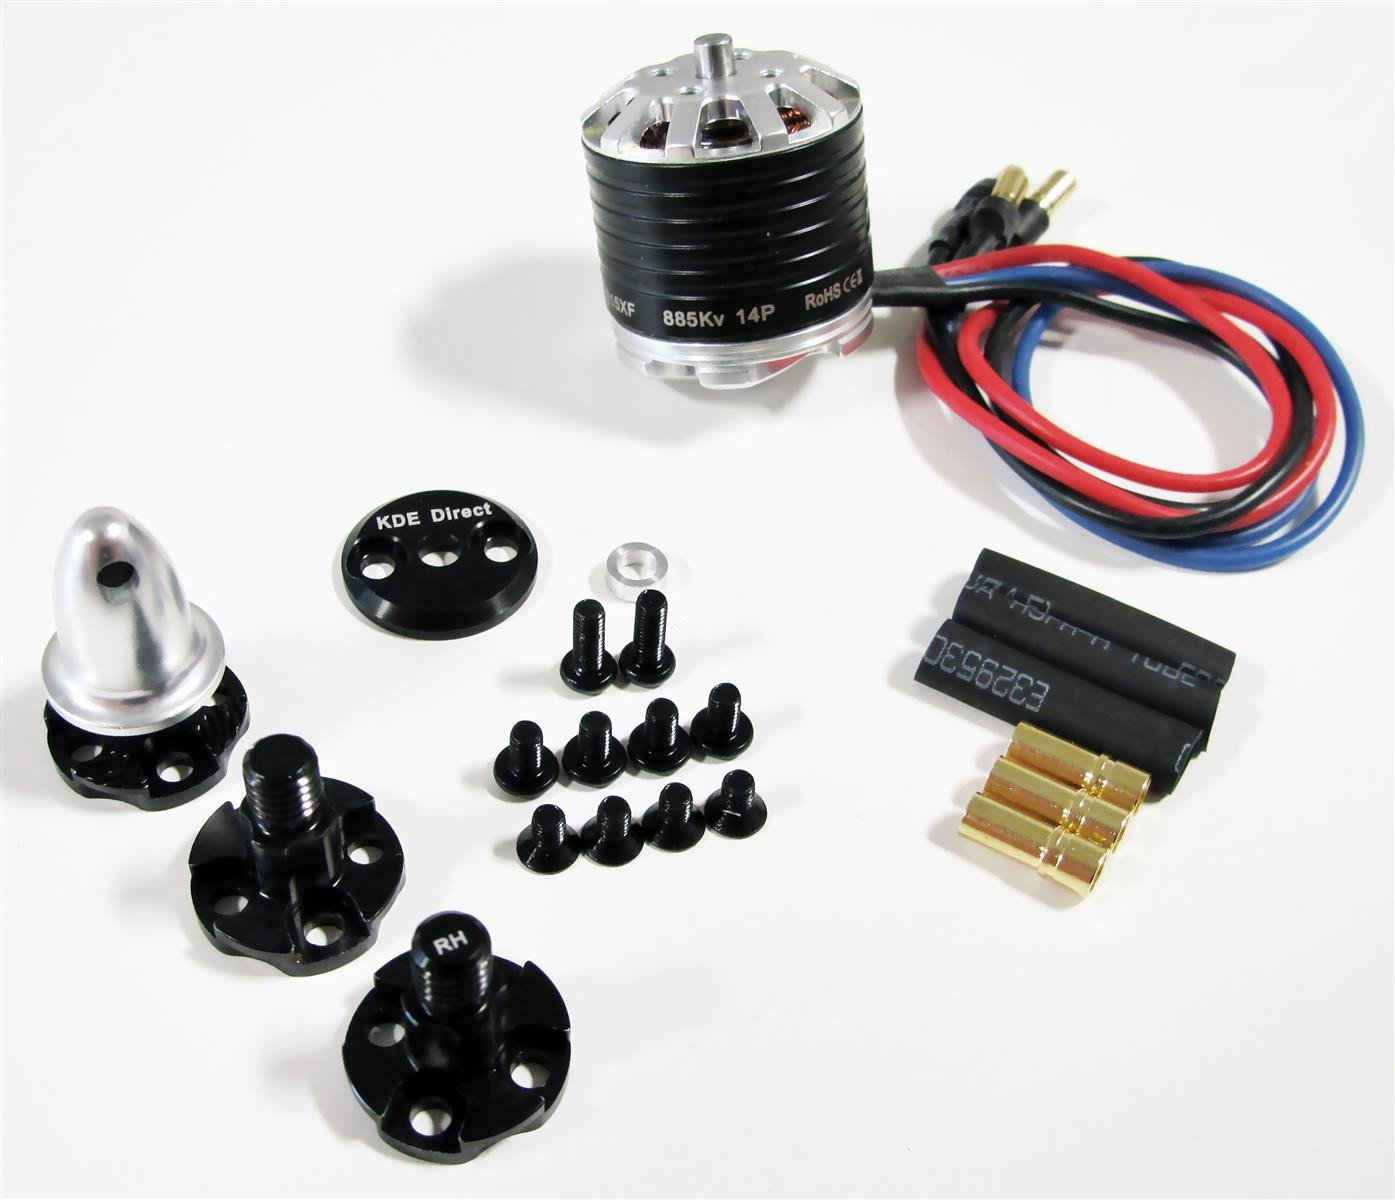 ... KDE2315XF-885 Brushless Motor for Electric Multi-Rotor (sUAS) Series ...